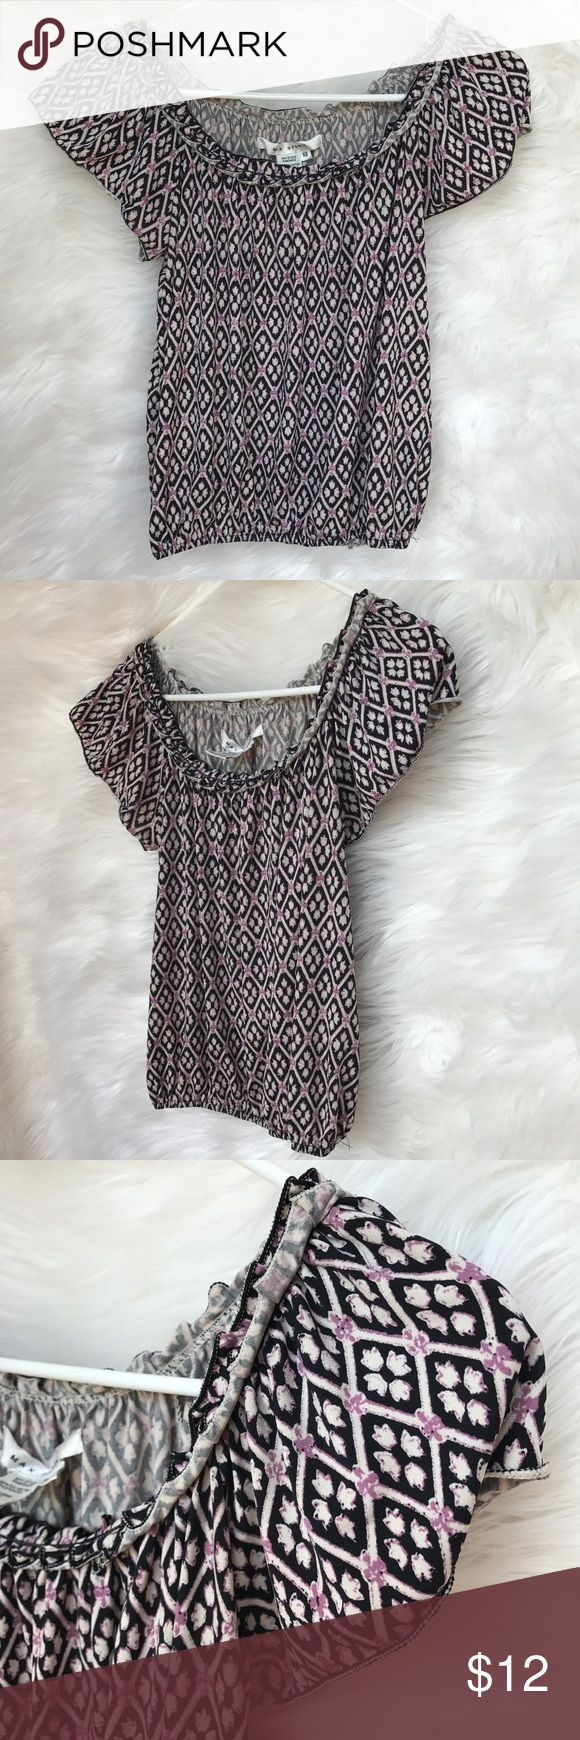 Max Studio Patterned Top Max Studio Purple/ Black Patterned Top. Top is a size extra small. The sleeves are ruffled. The top has only been worn a few times and is in excellent condition! Very cute top that is perfect for a casual or dressy summer outfit! Open to offers! 🖤 Max Studio Tops Tees - Short Sleeve